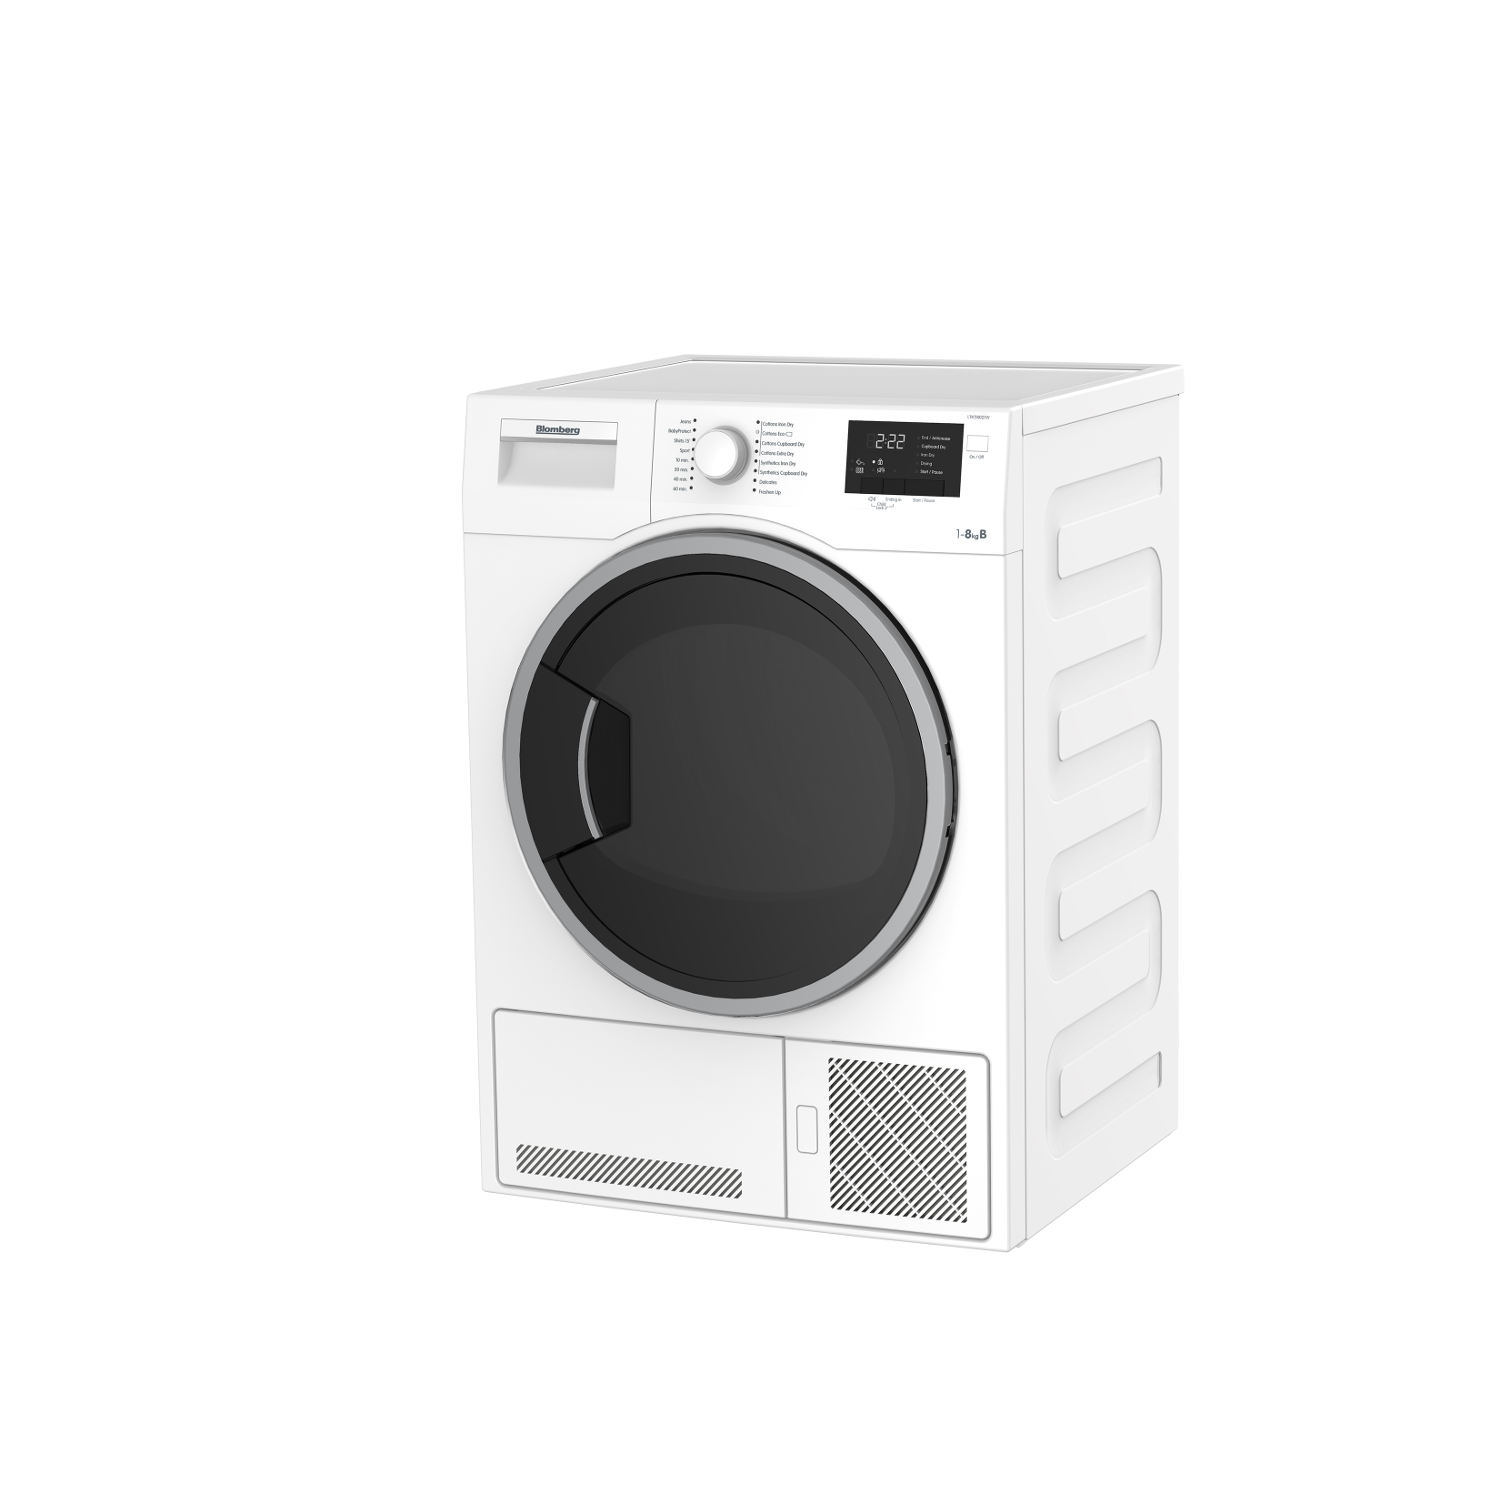 Blomberg 8kg Condenser Tumble Dryer - White - 5